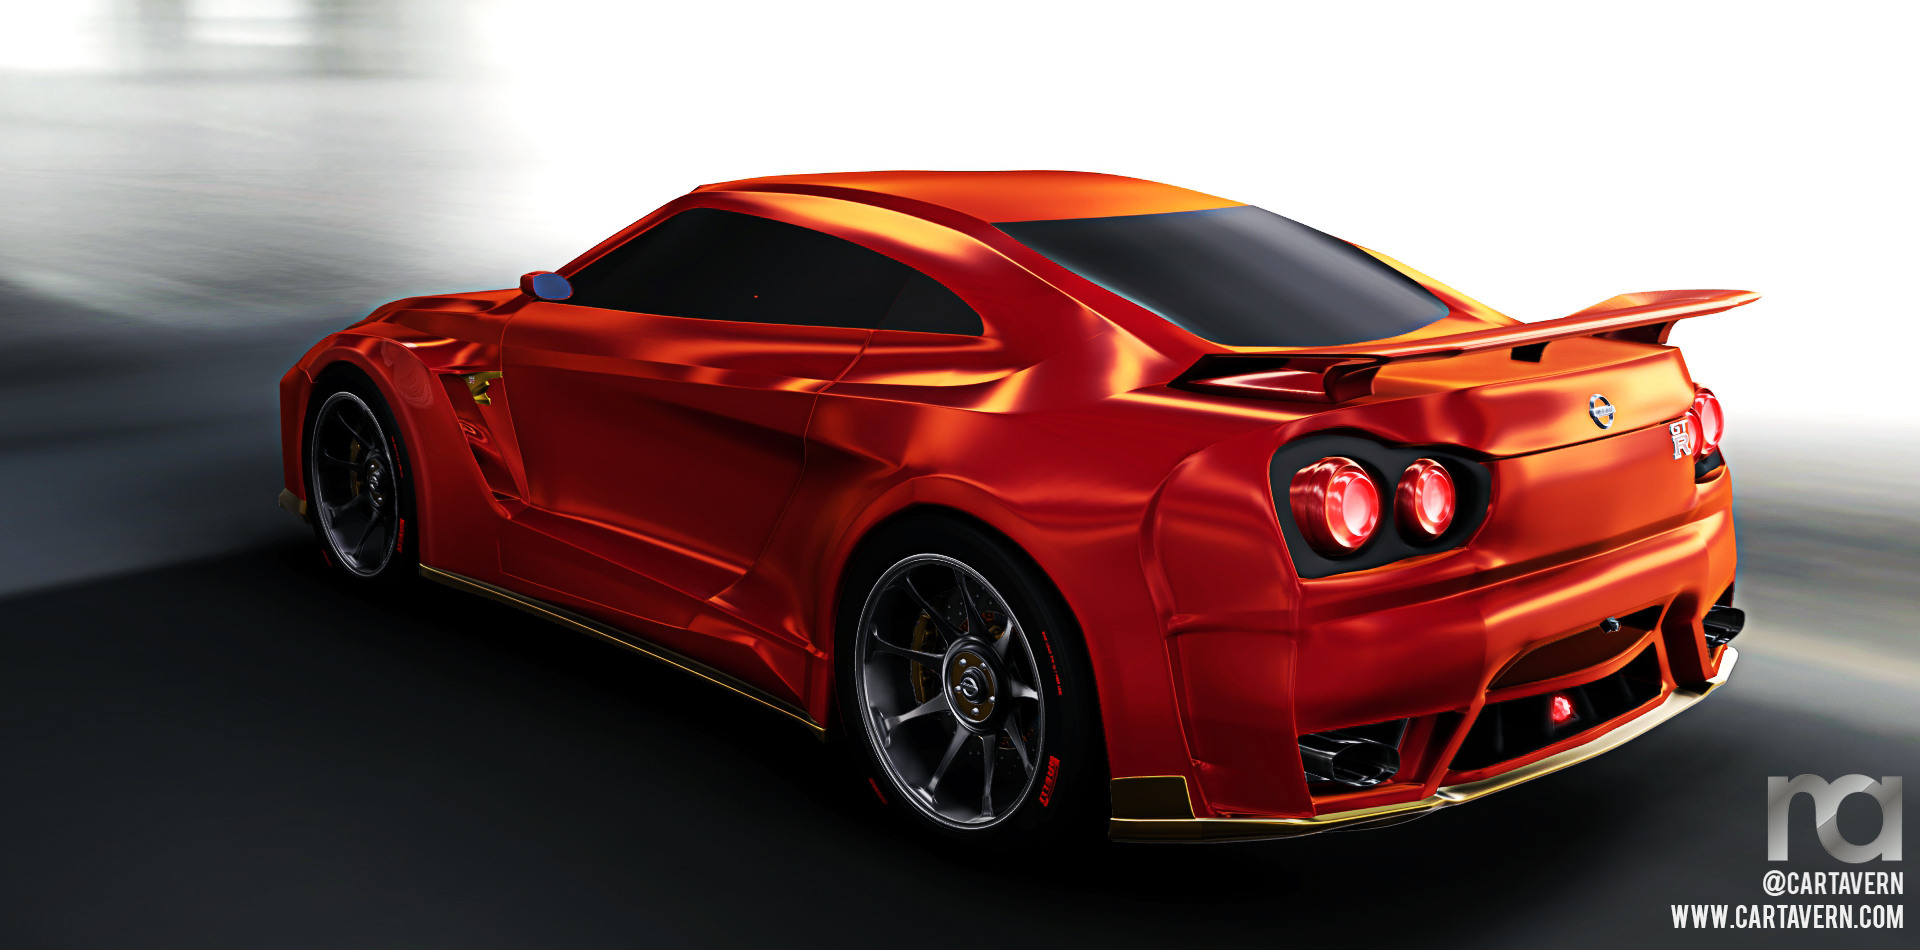 2018 Nissan GT R PROTO Concept | Car Photos Catalog 2019